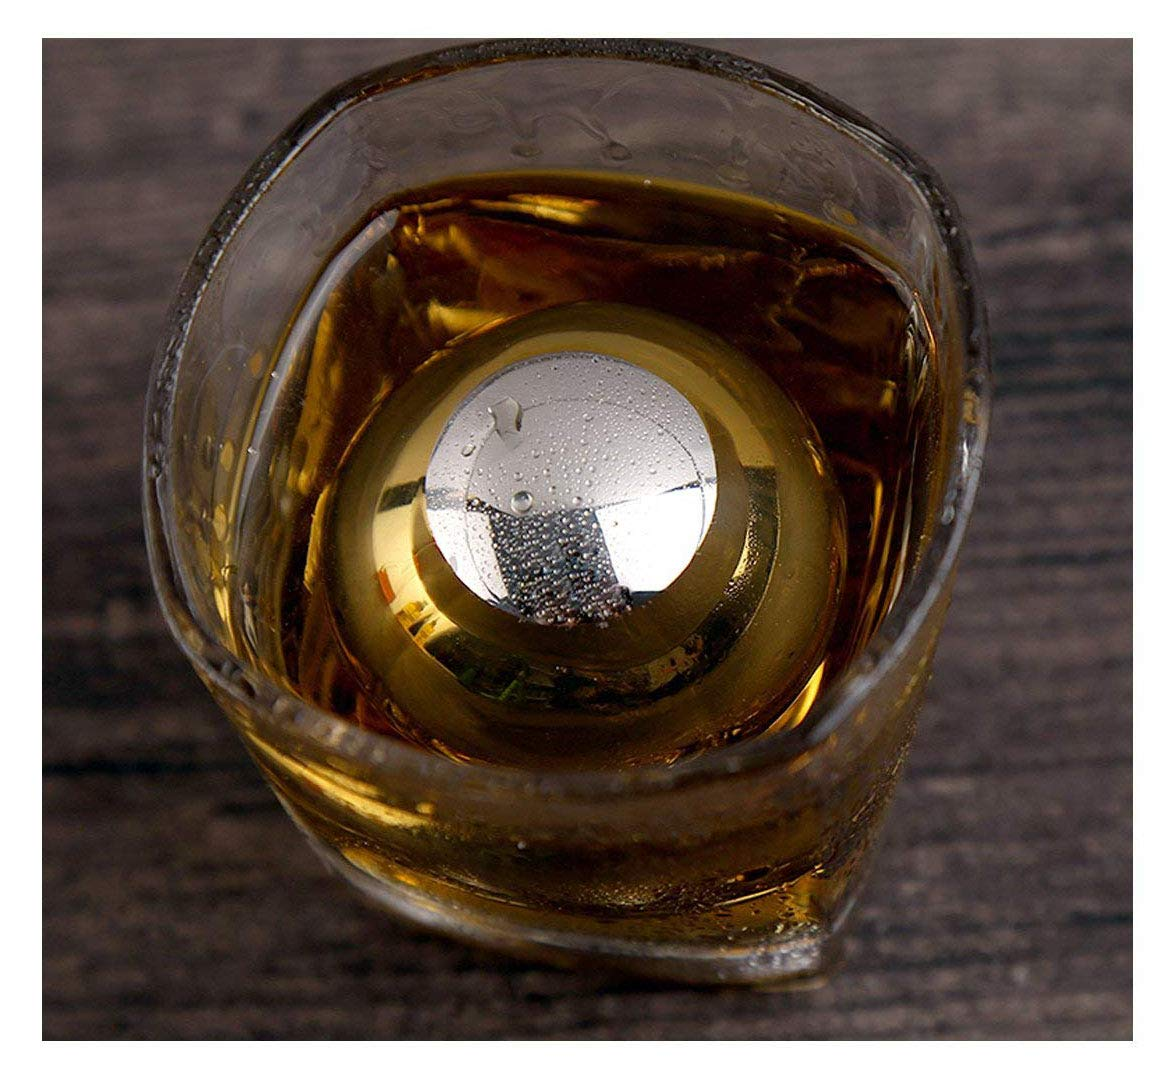 Whiteswallow Reusable Stainless Steel Ice Cube Metal Whiskey Stones Ball for Drinks